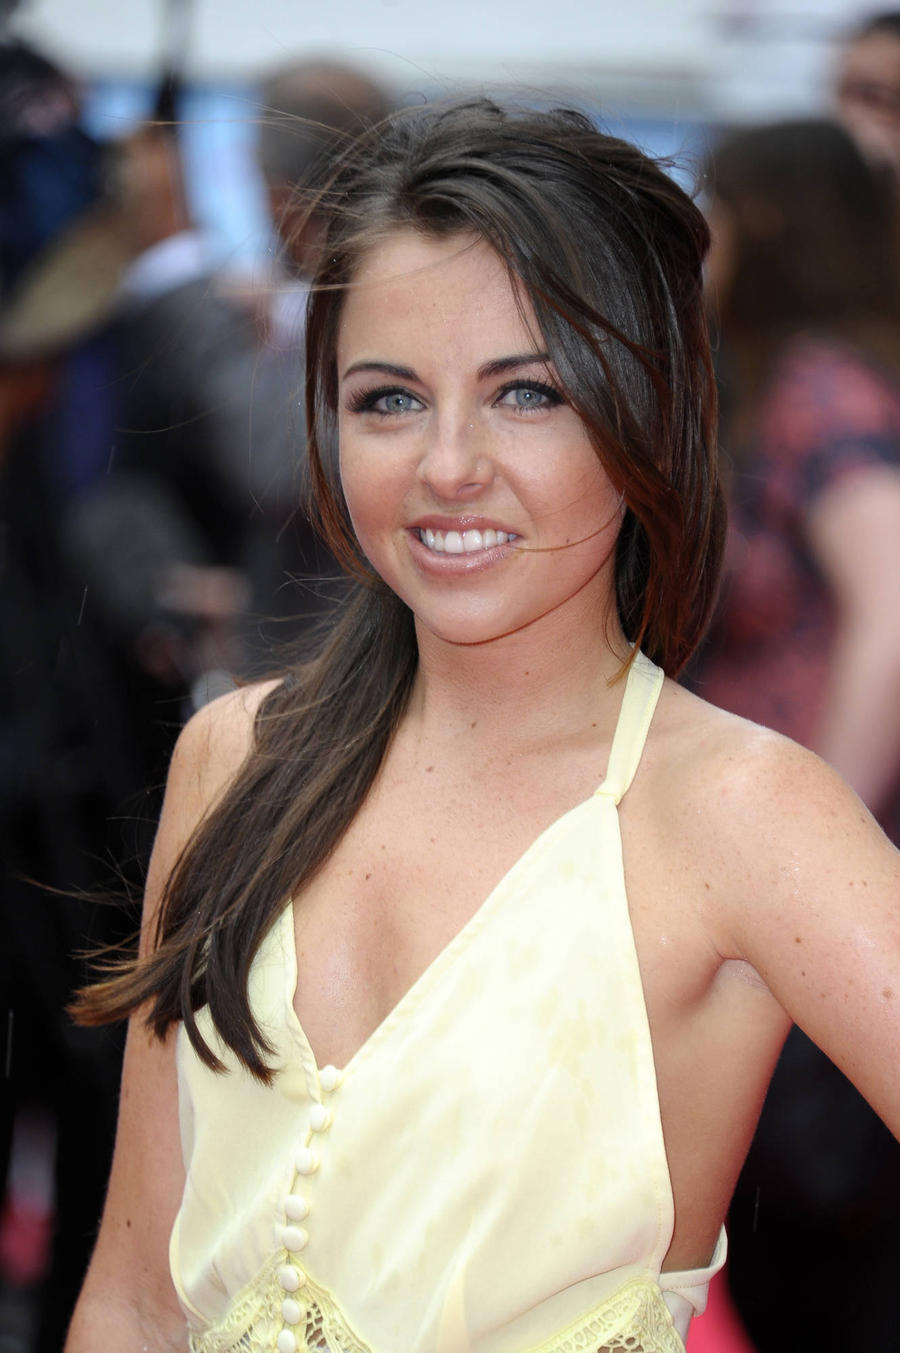 Louisa Lytton Rescued From Mountain After Skiing Accident